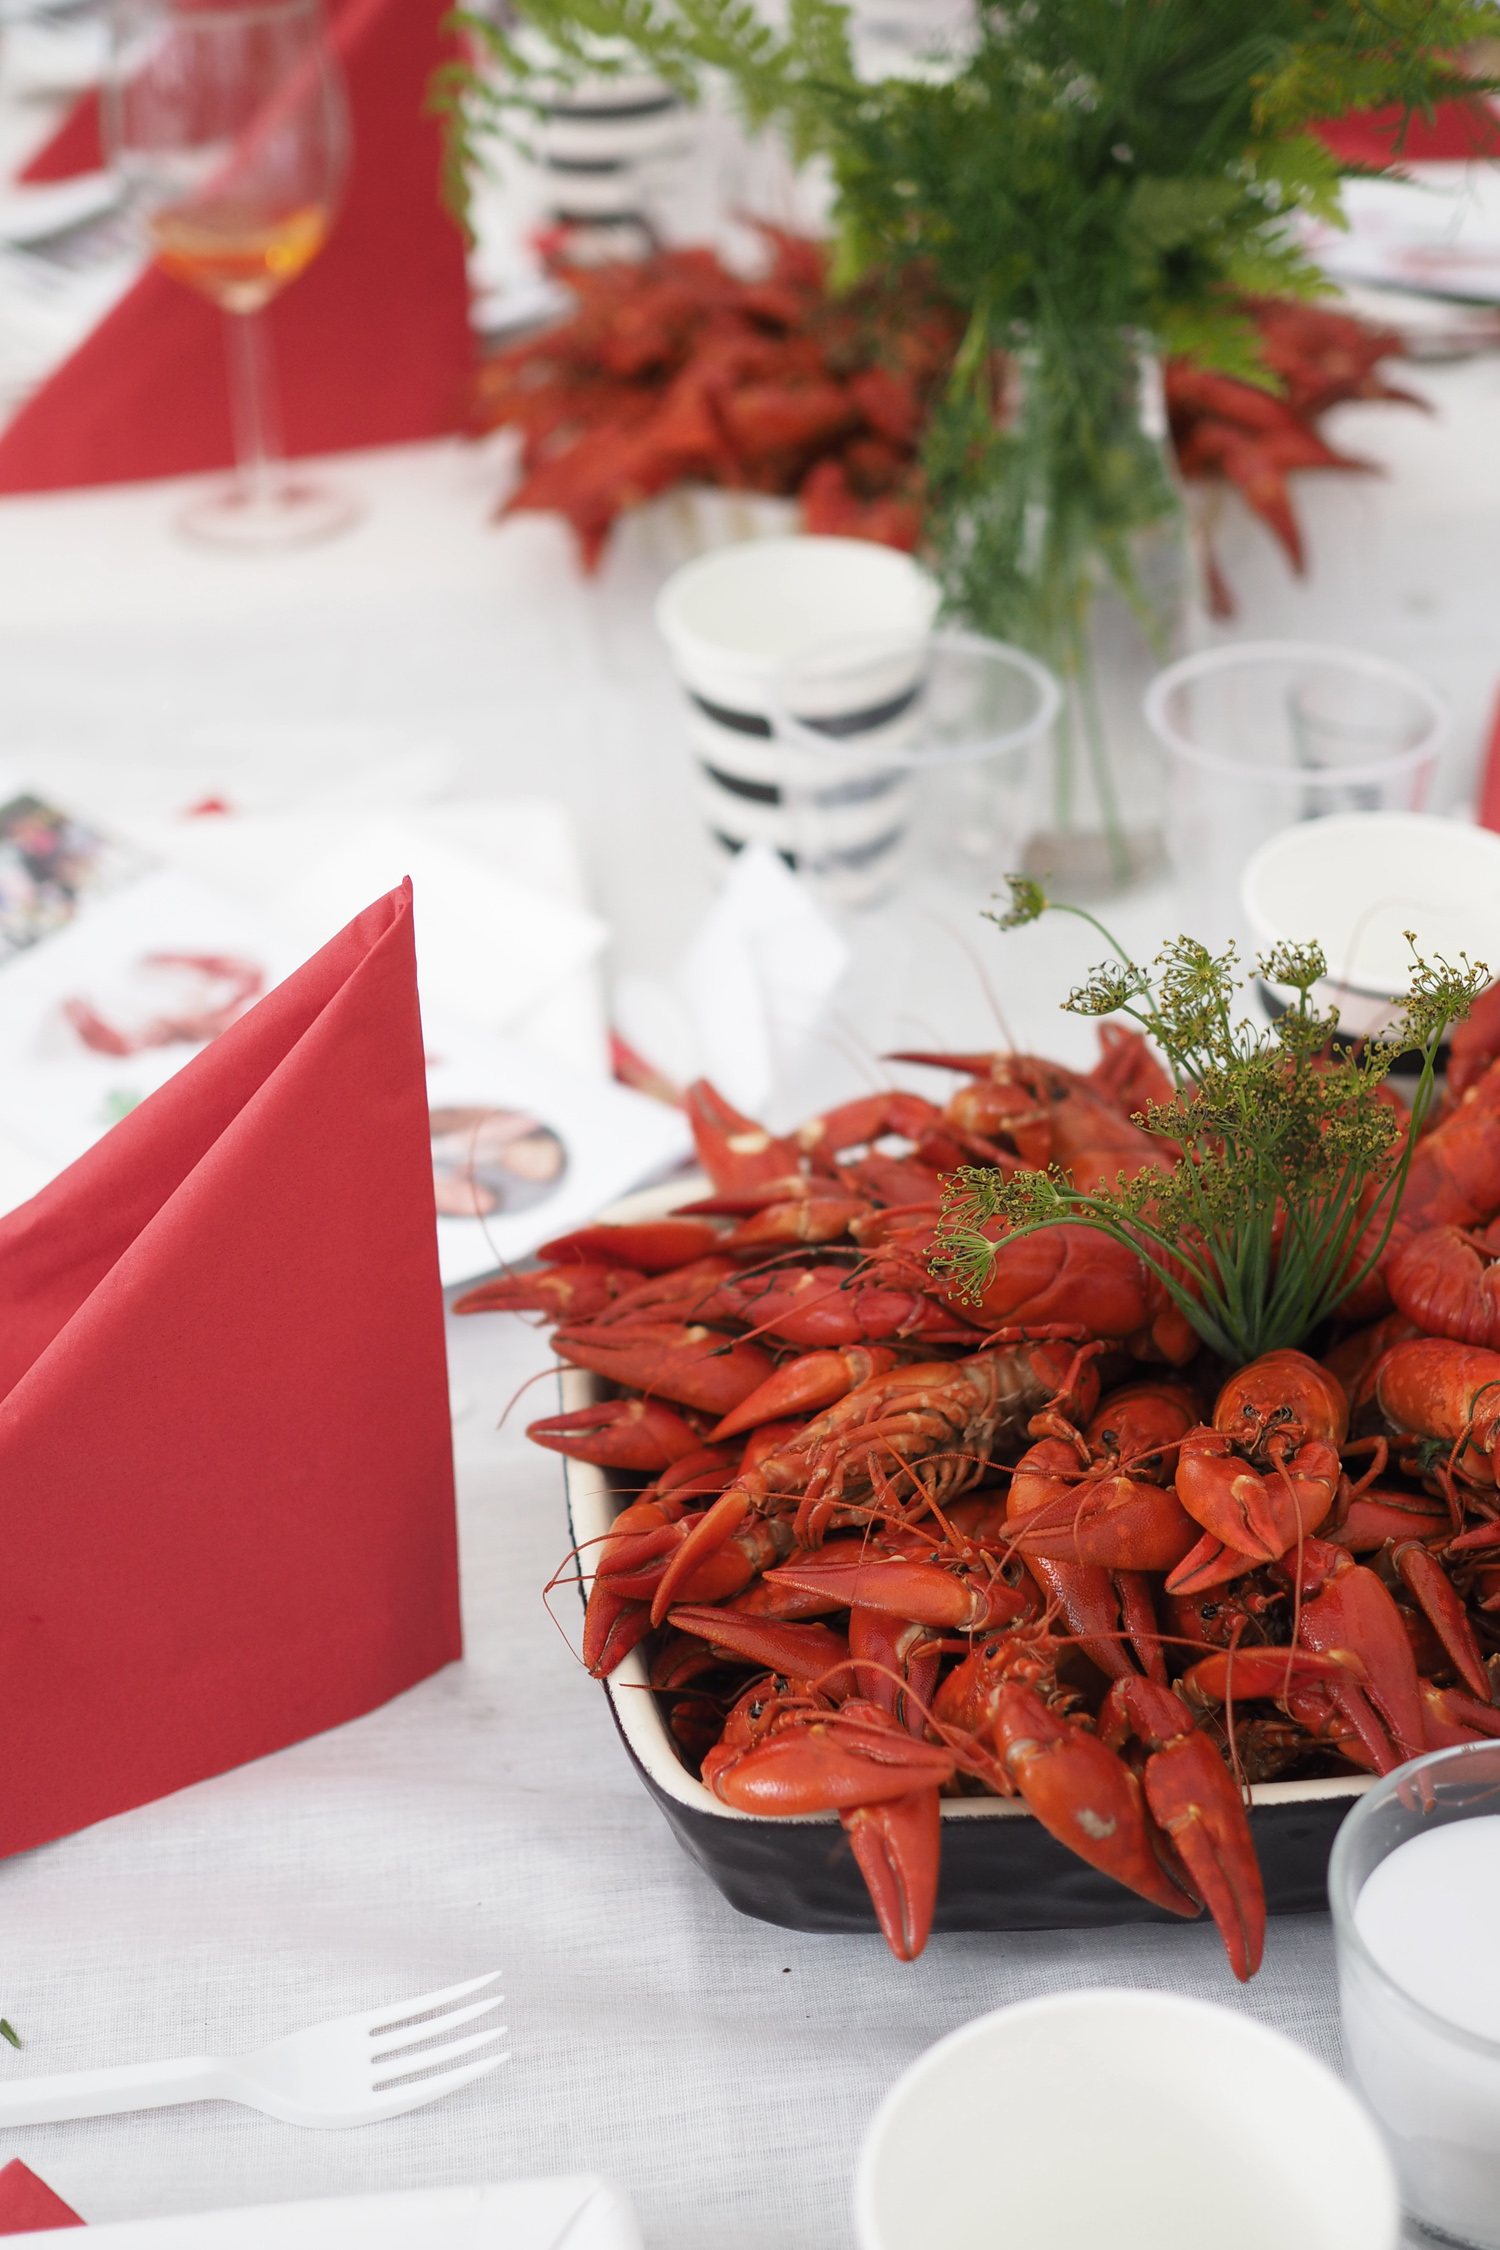 Char and the city - Crayfish party ideas - read more on the blog: www.idealista.fi/charandthecity/2016/07/31/tunnelmia-rapujuhlista